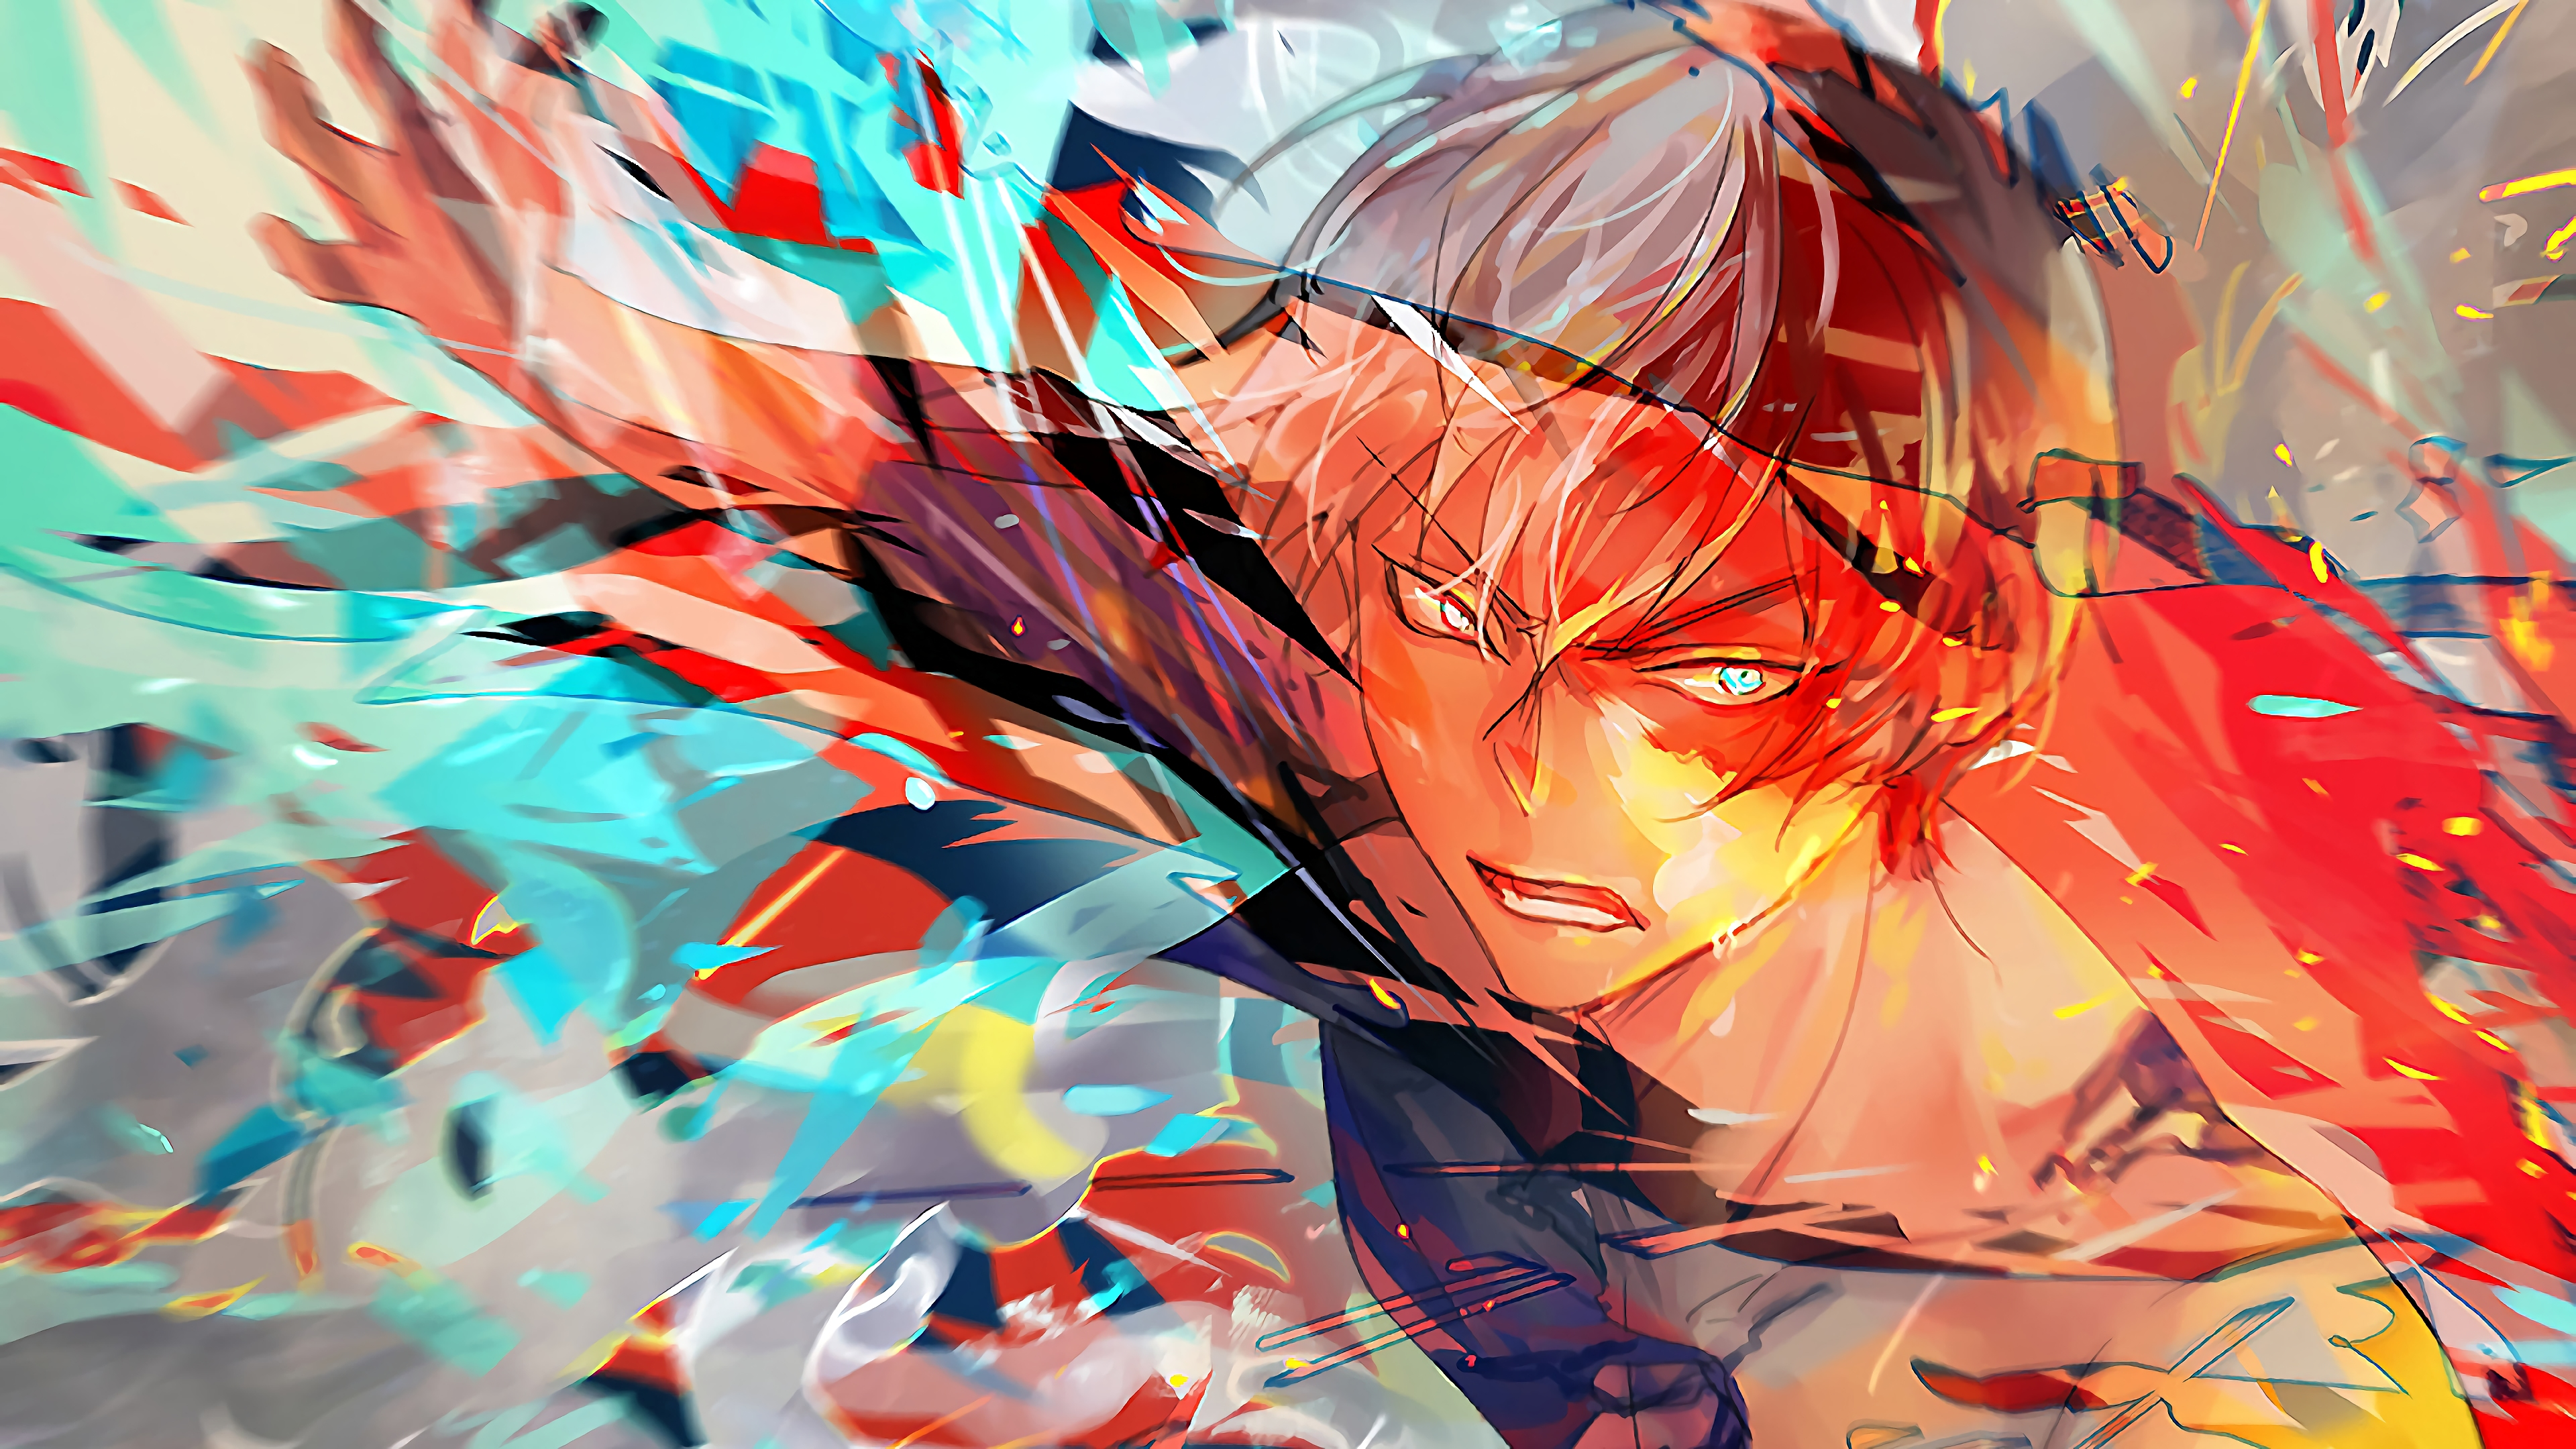 Follow the vibe and change your wallpaper every day! Shoto Todoroki My Hero Academia, HD Anime, 4k Wallpapers ...